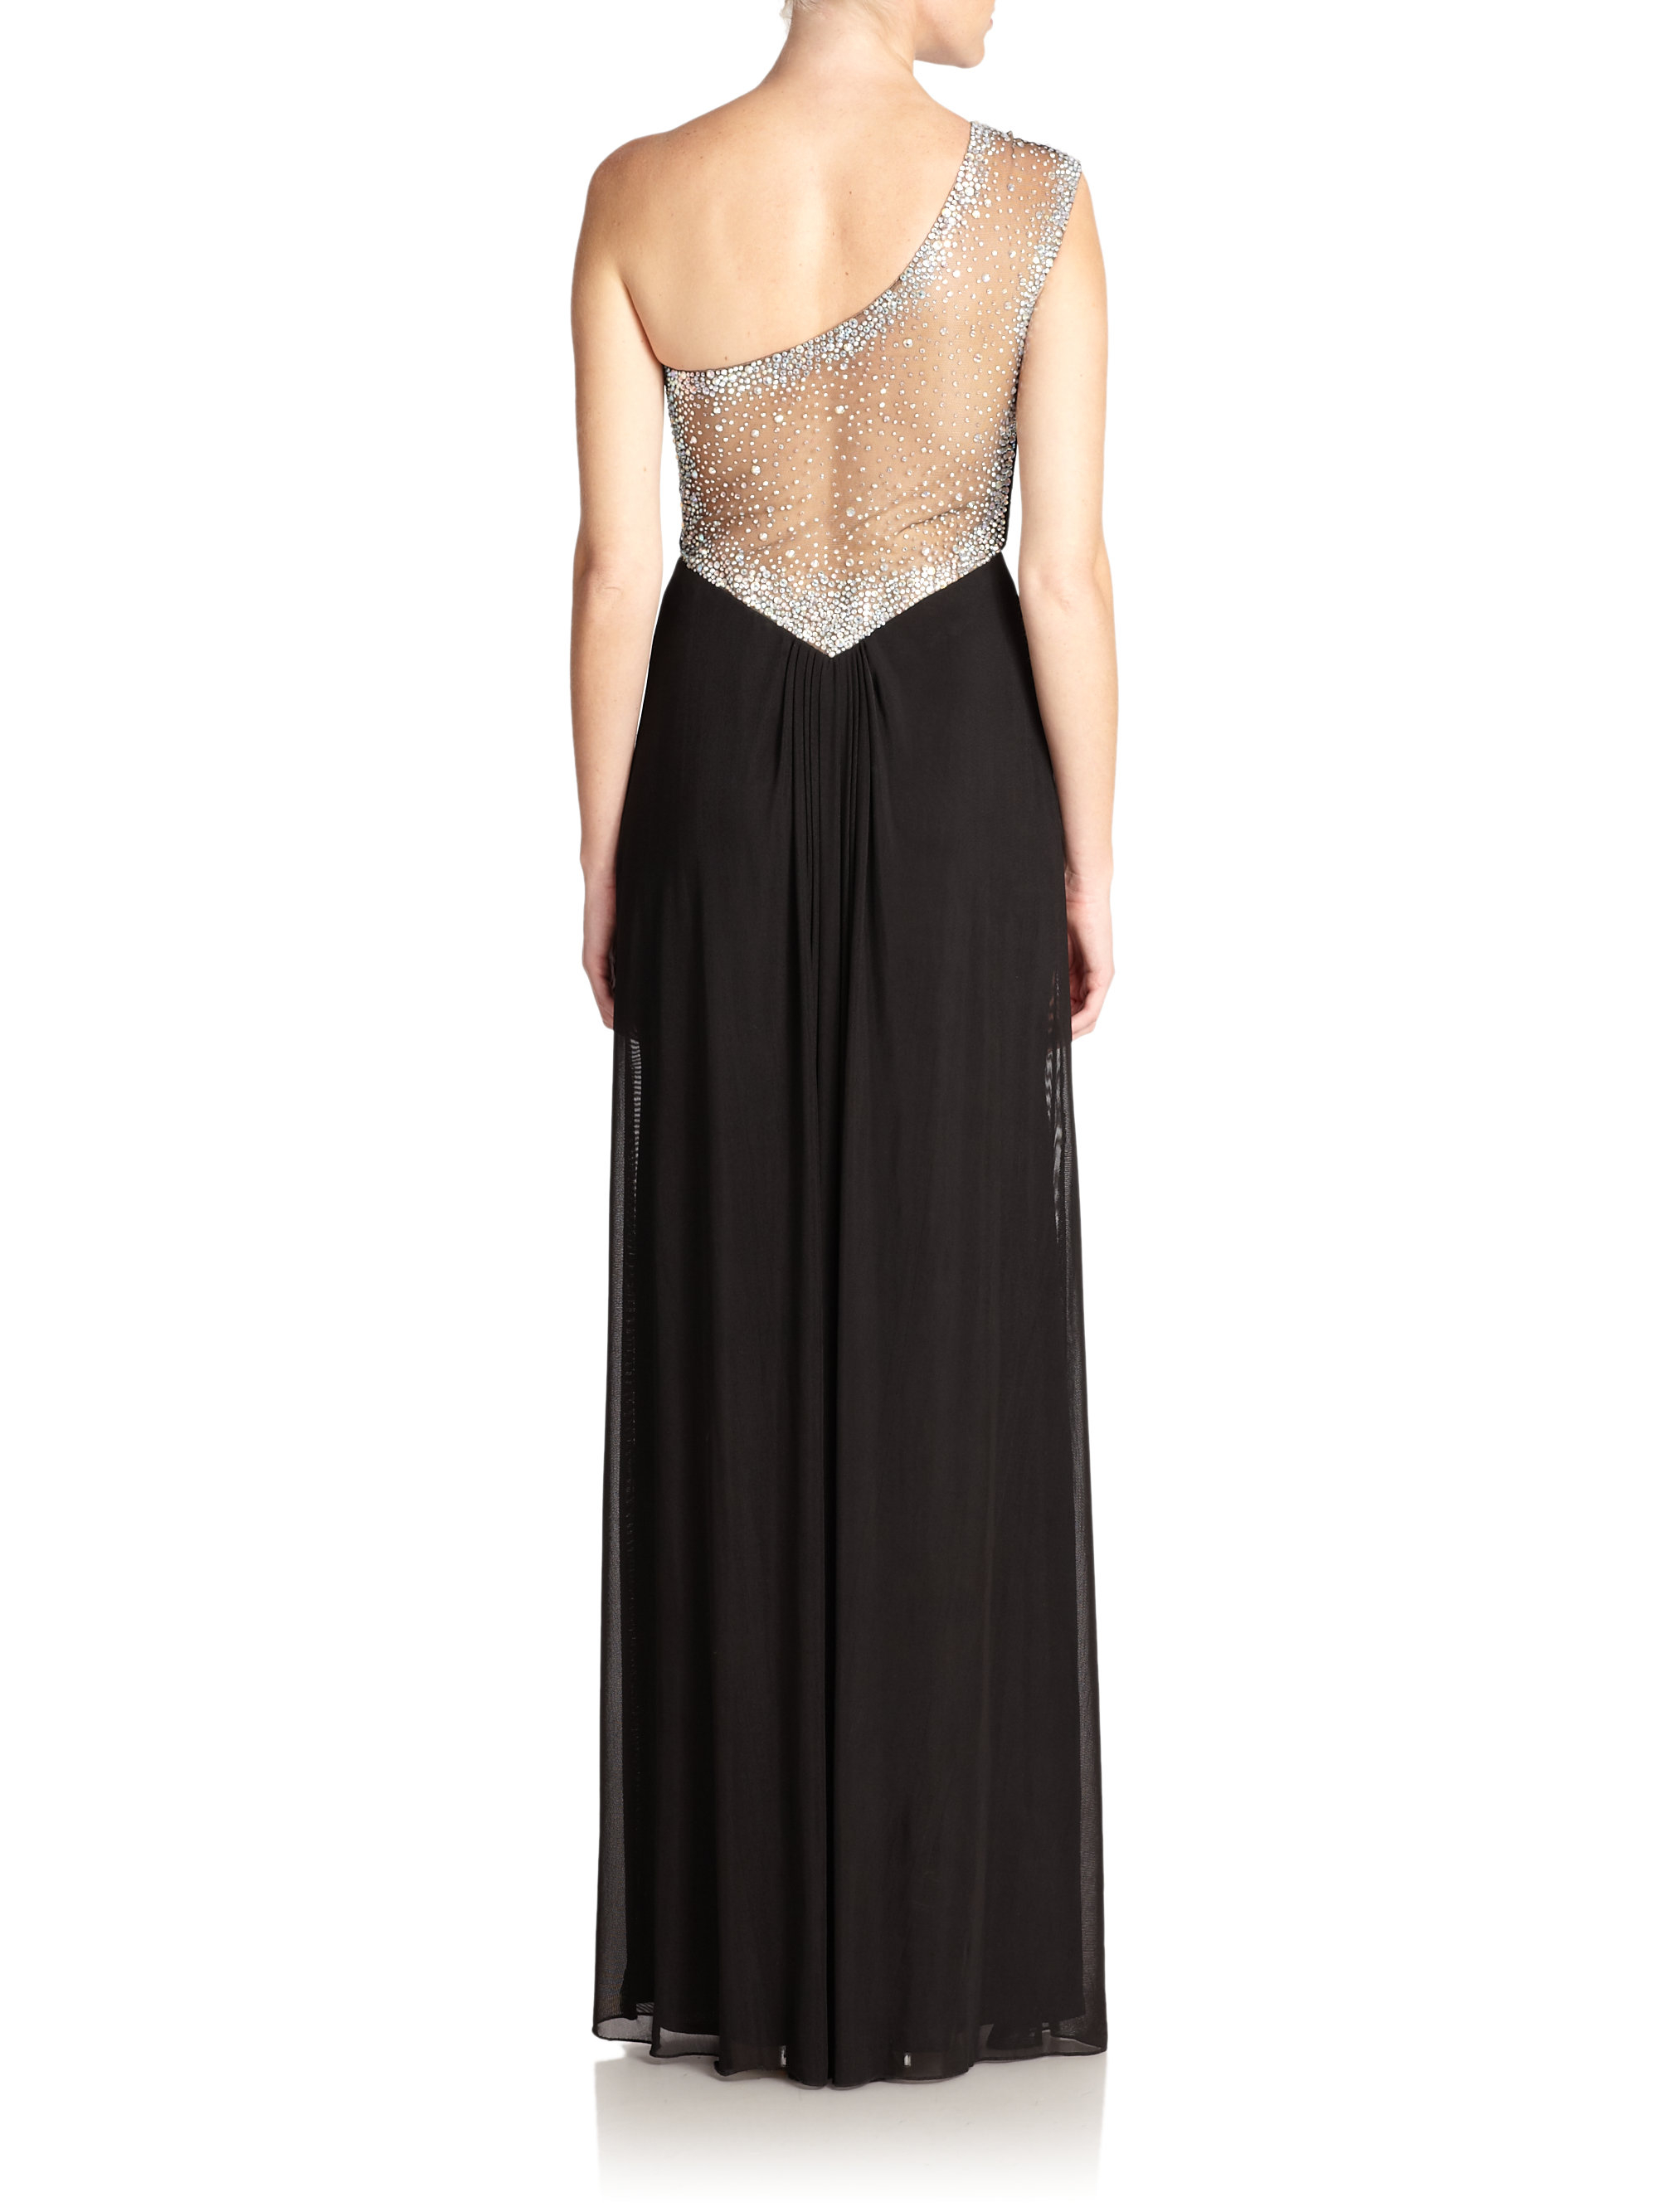 La femme one shoulder dress consider